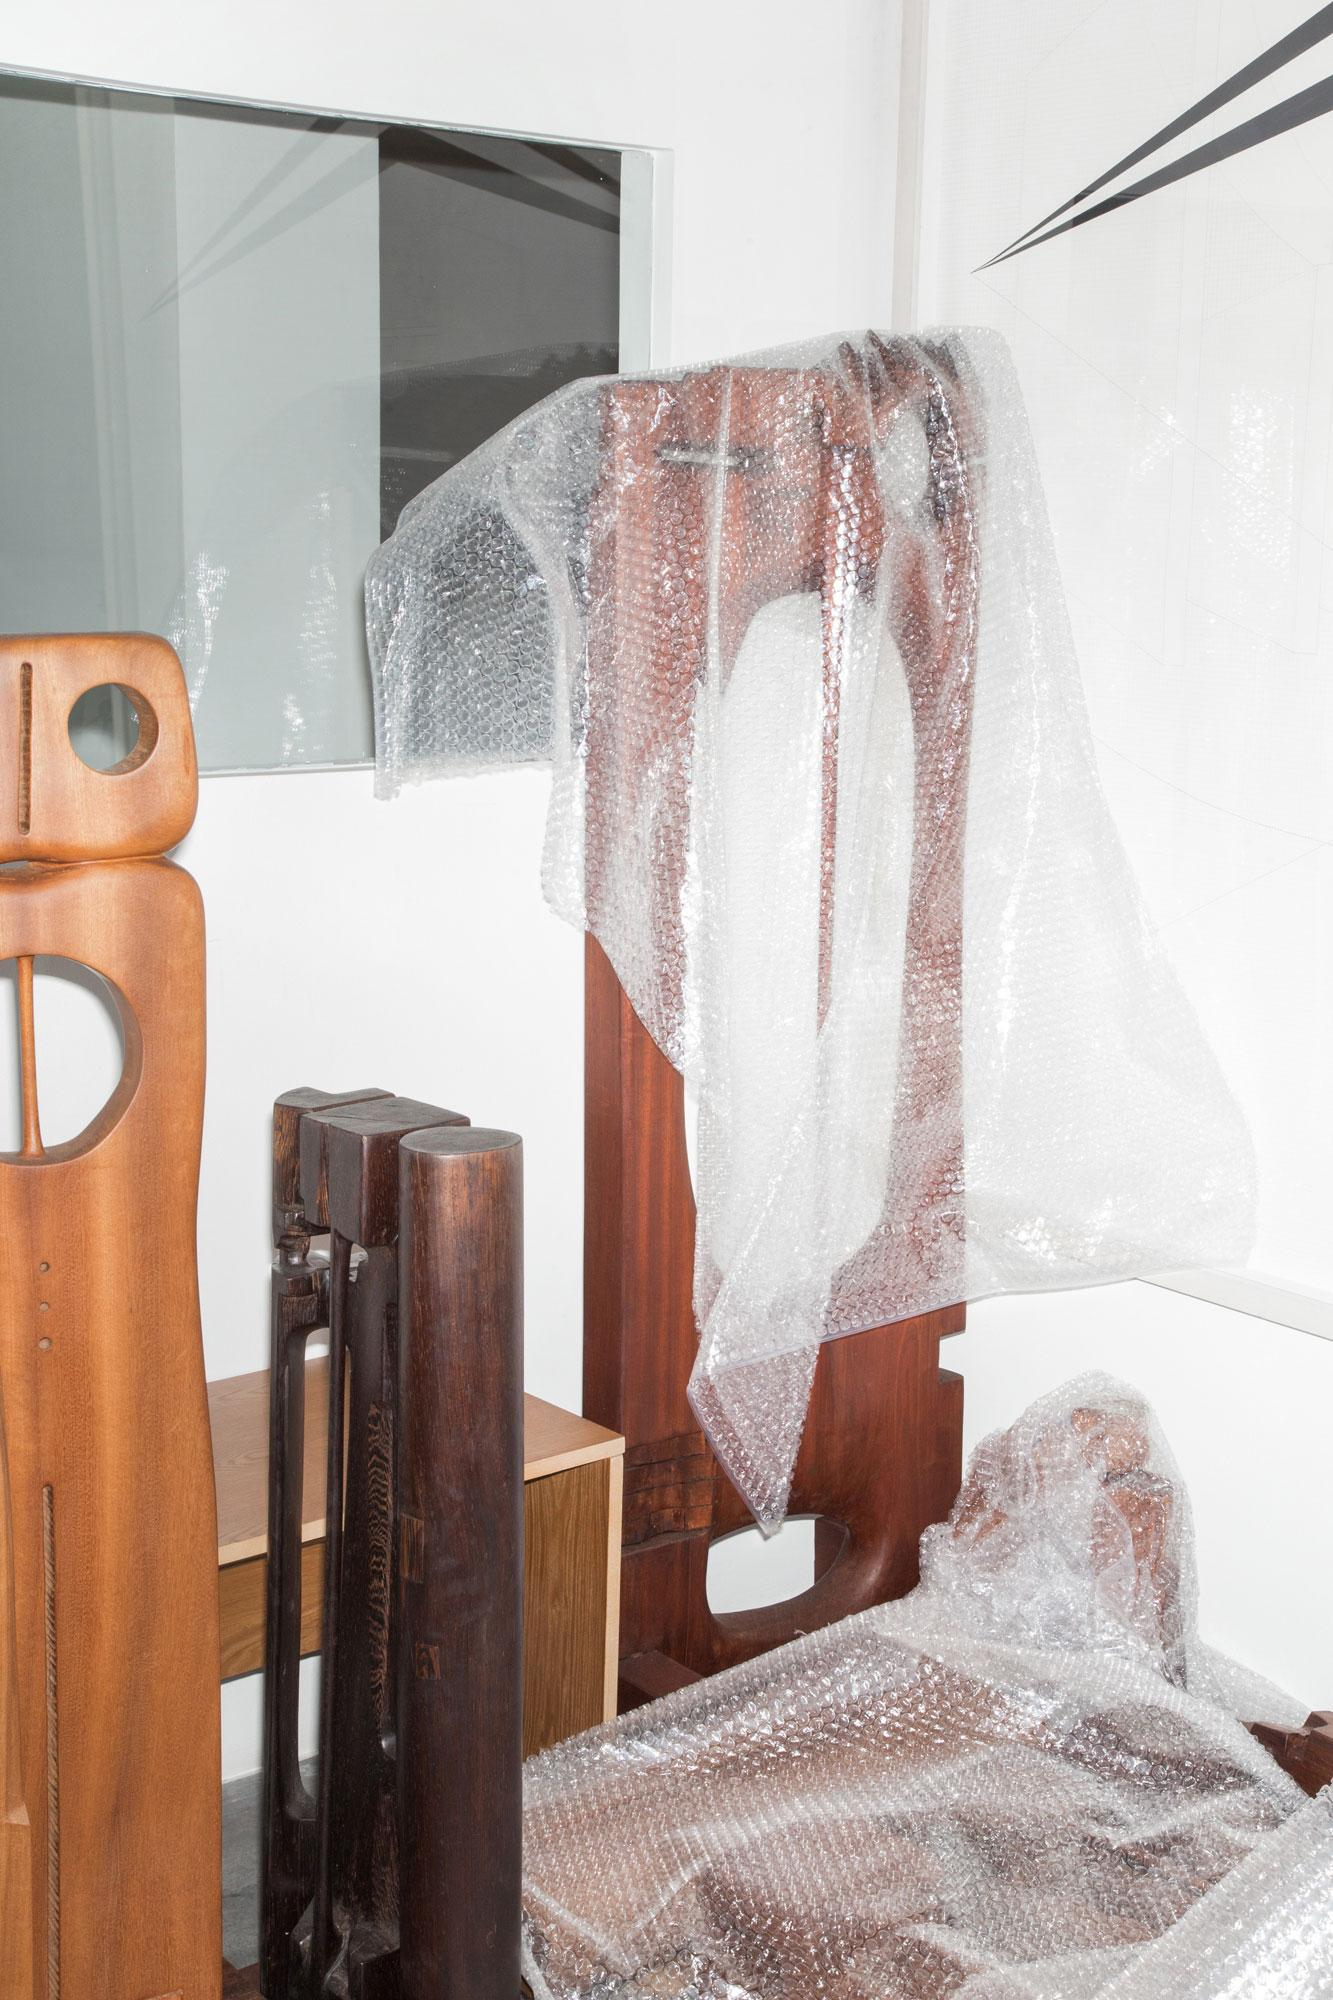 """Chaouki Choukini's exhibition """"Poetry in Wood""""//atGreen Art Gallery  during installation"""